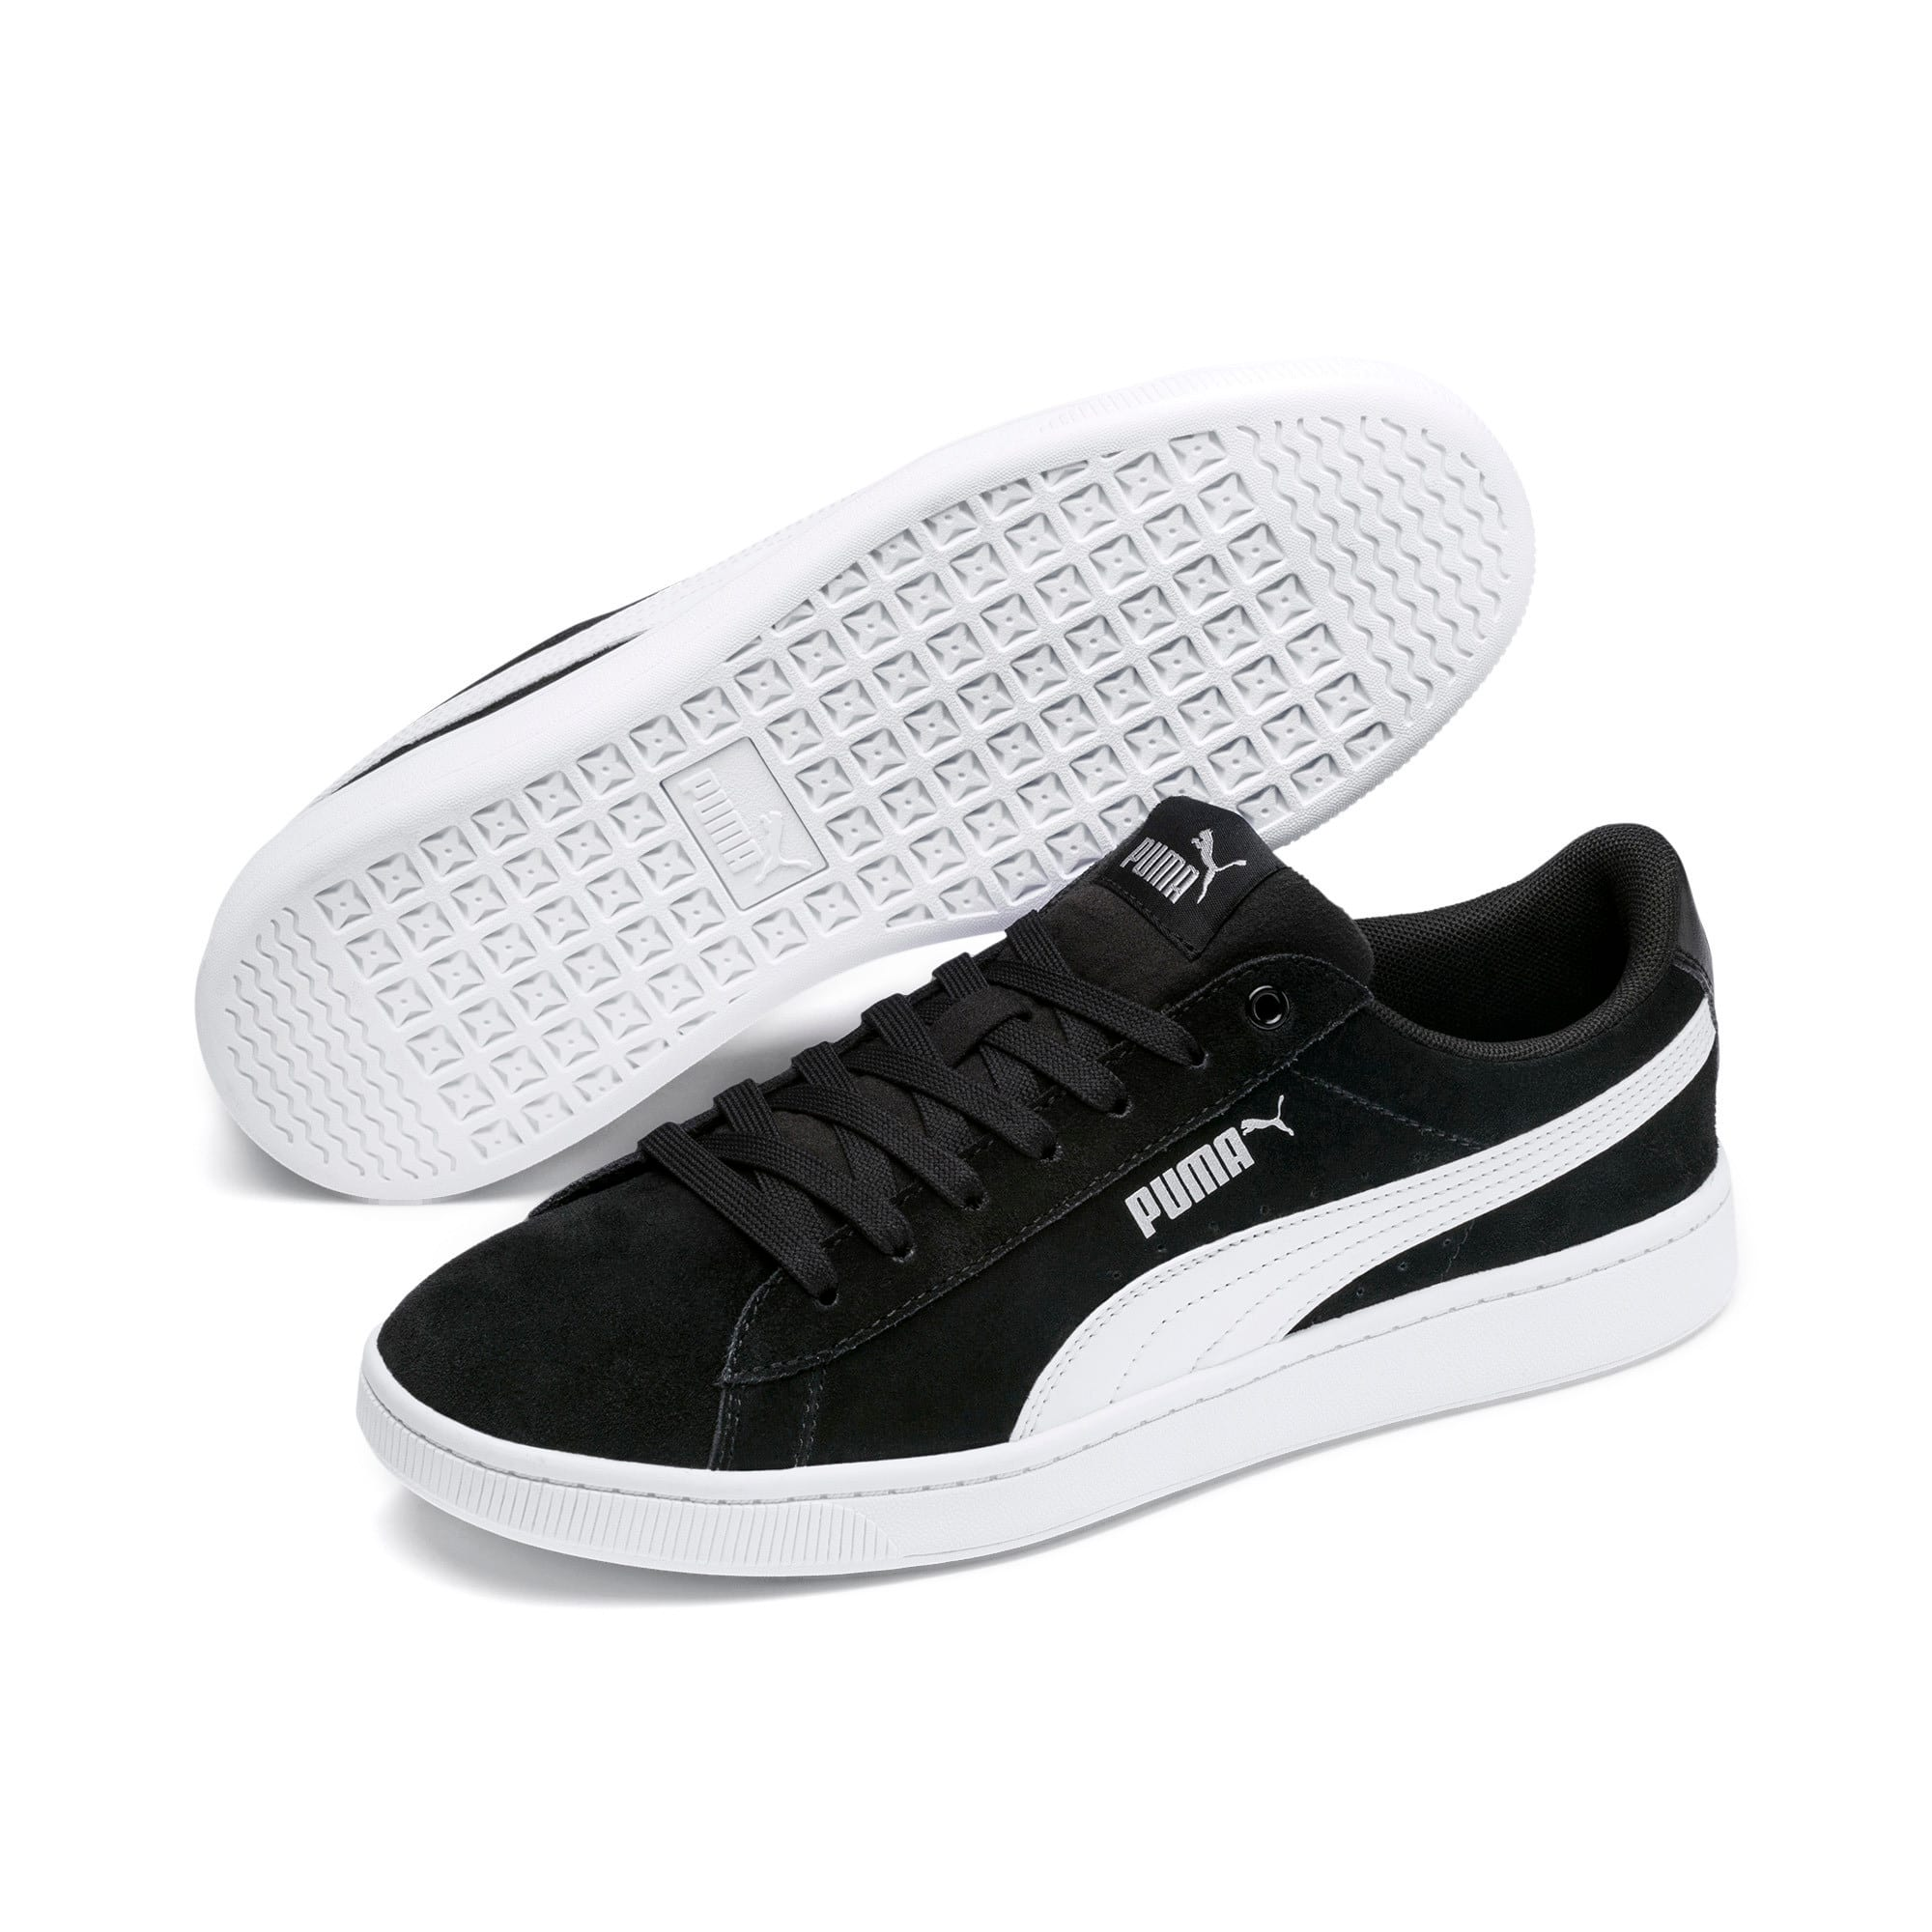 Thumbnail 2 of PUMA Vikky v2 Women's Sneakers, Puma Black-Puma White-Silver, medium